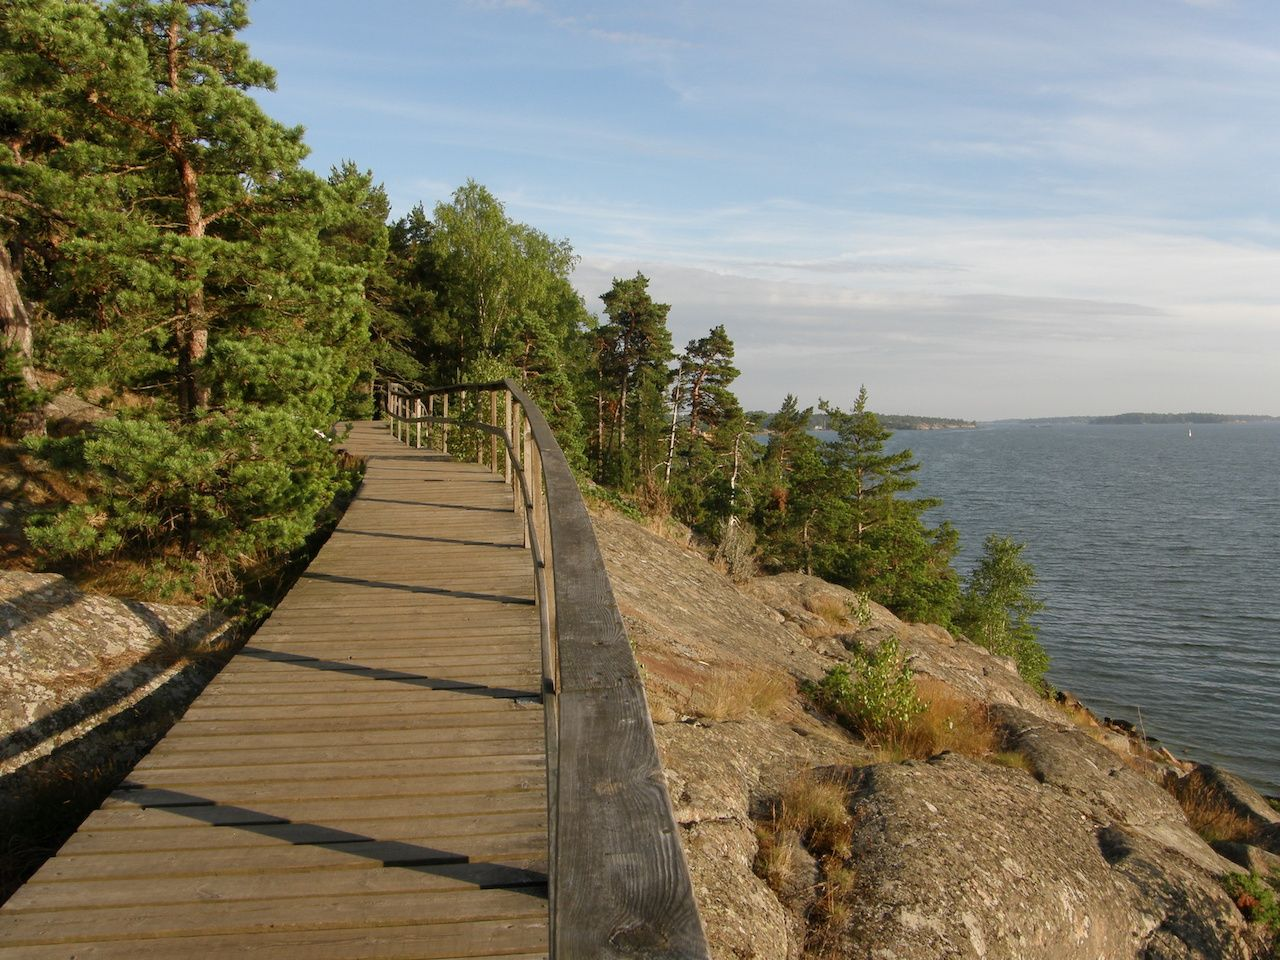 Wooden pedestrian path in pink granite rocks of Mariehamn, Aland archipelago, Finland